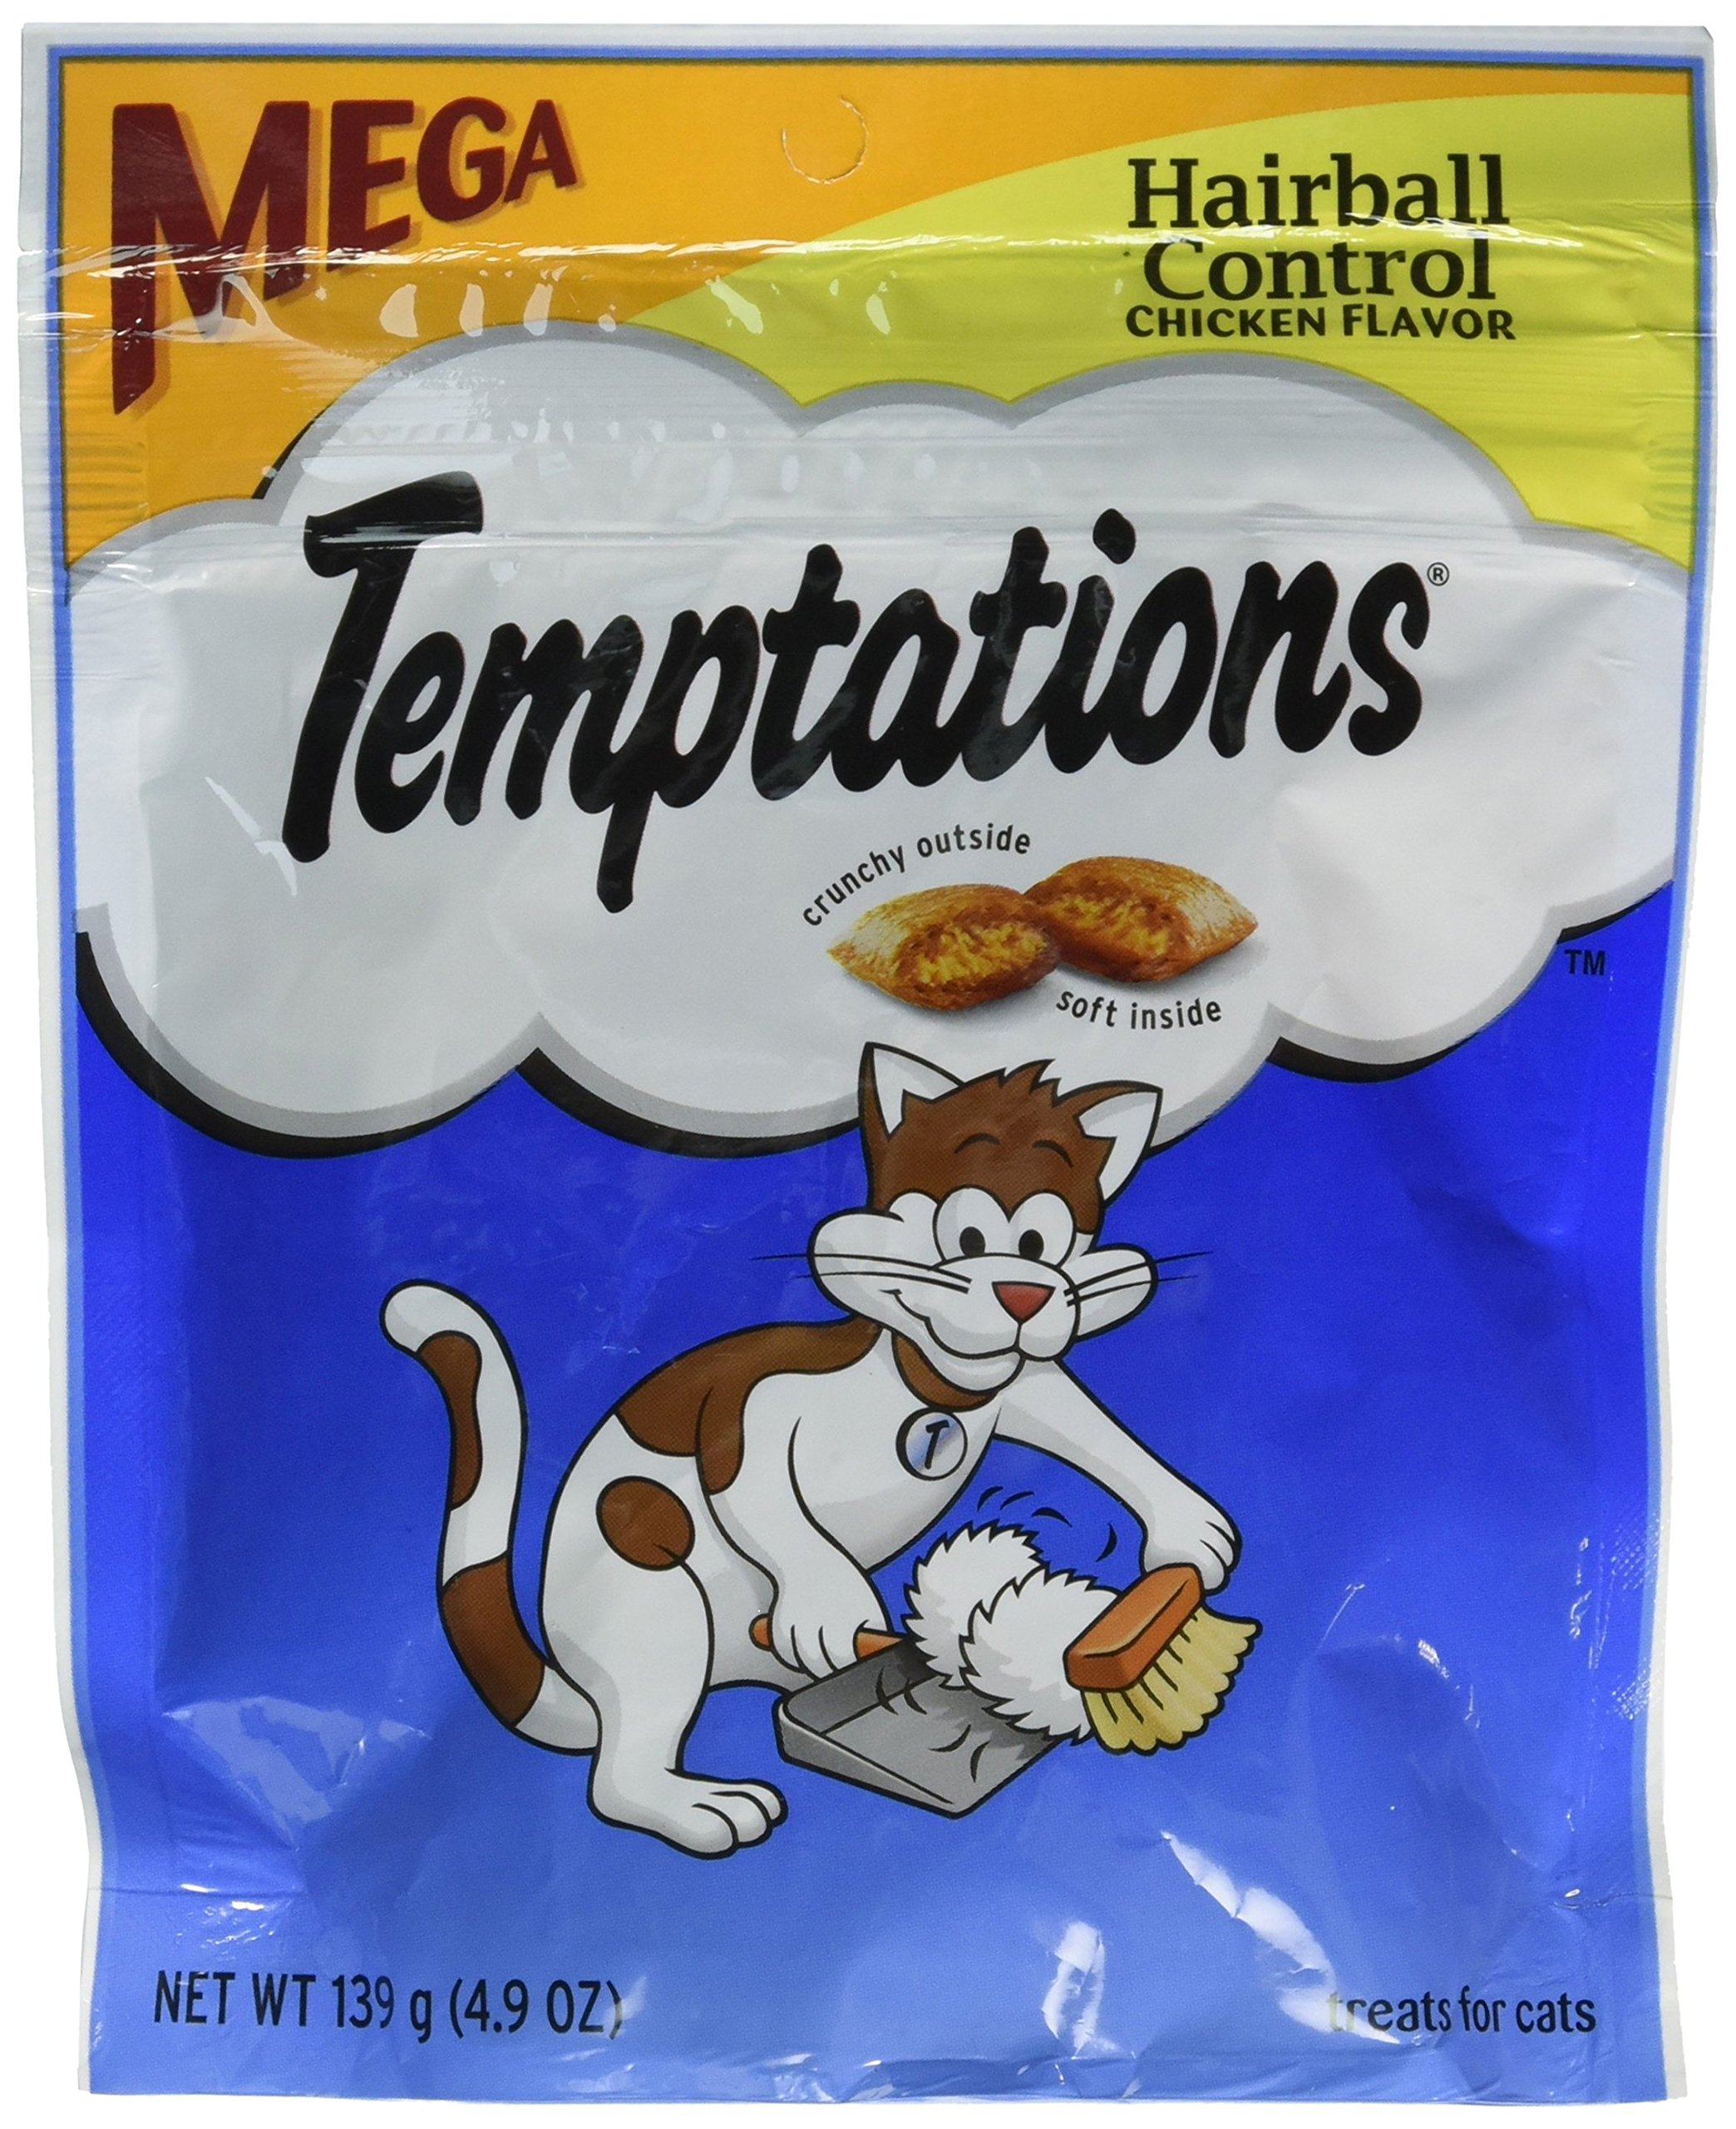 Whiskas Temptations Hairball Control Chicken Flavor Cat Treats 4.9 oz by Mars (3-Pack Bundle) by MARS Inc